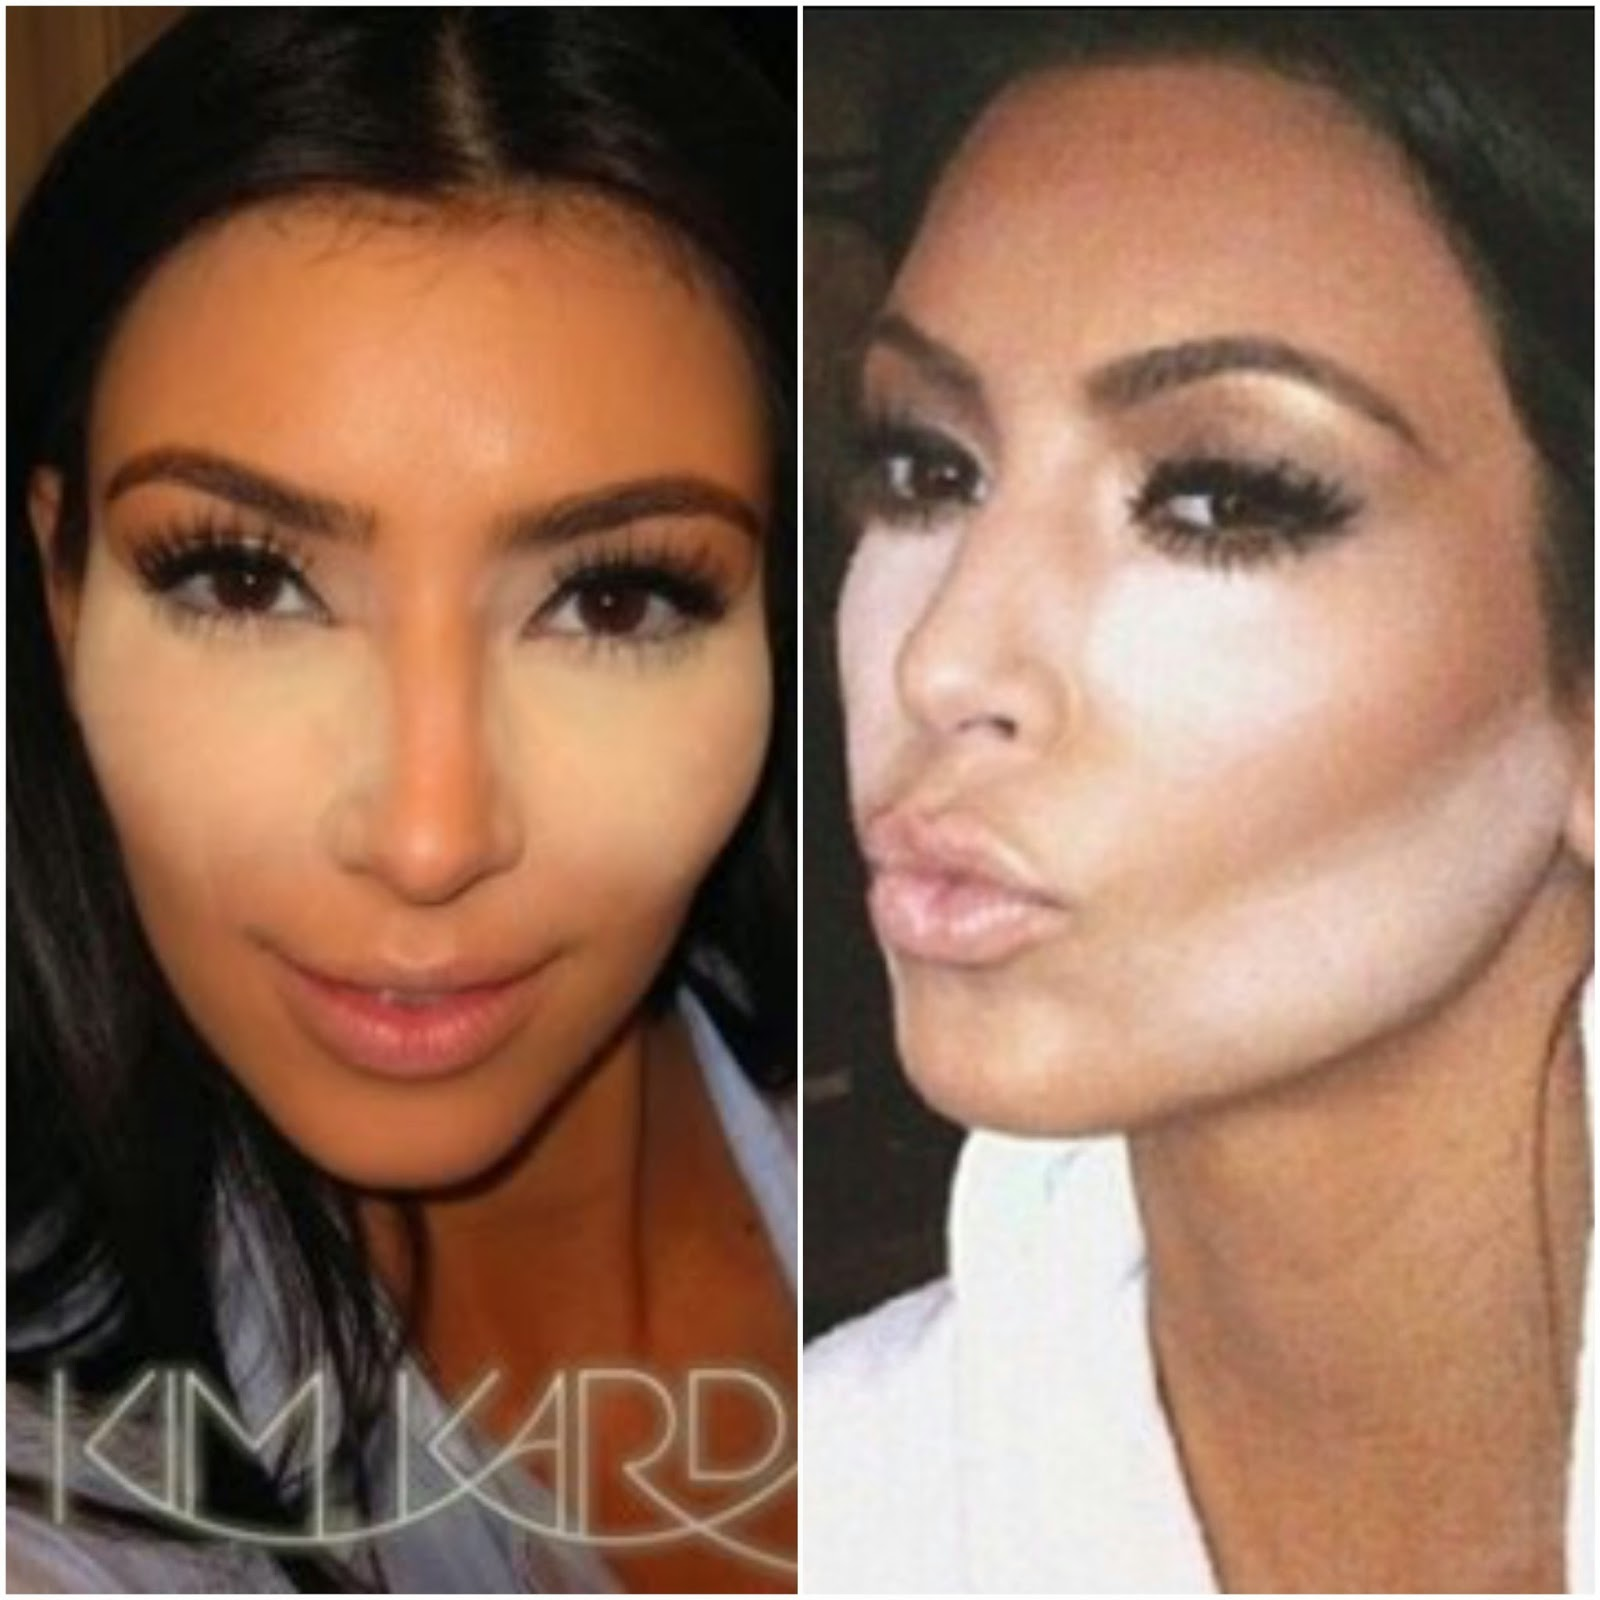 The Mysterious Powder In Celeb Contour Selfies Explained! Hattie Rainbow:  The Mysterious Powder In